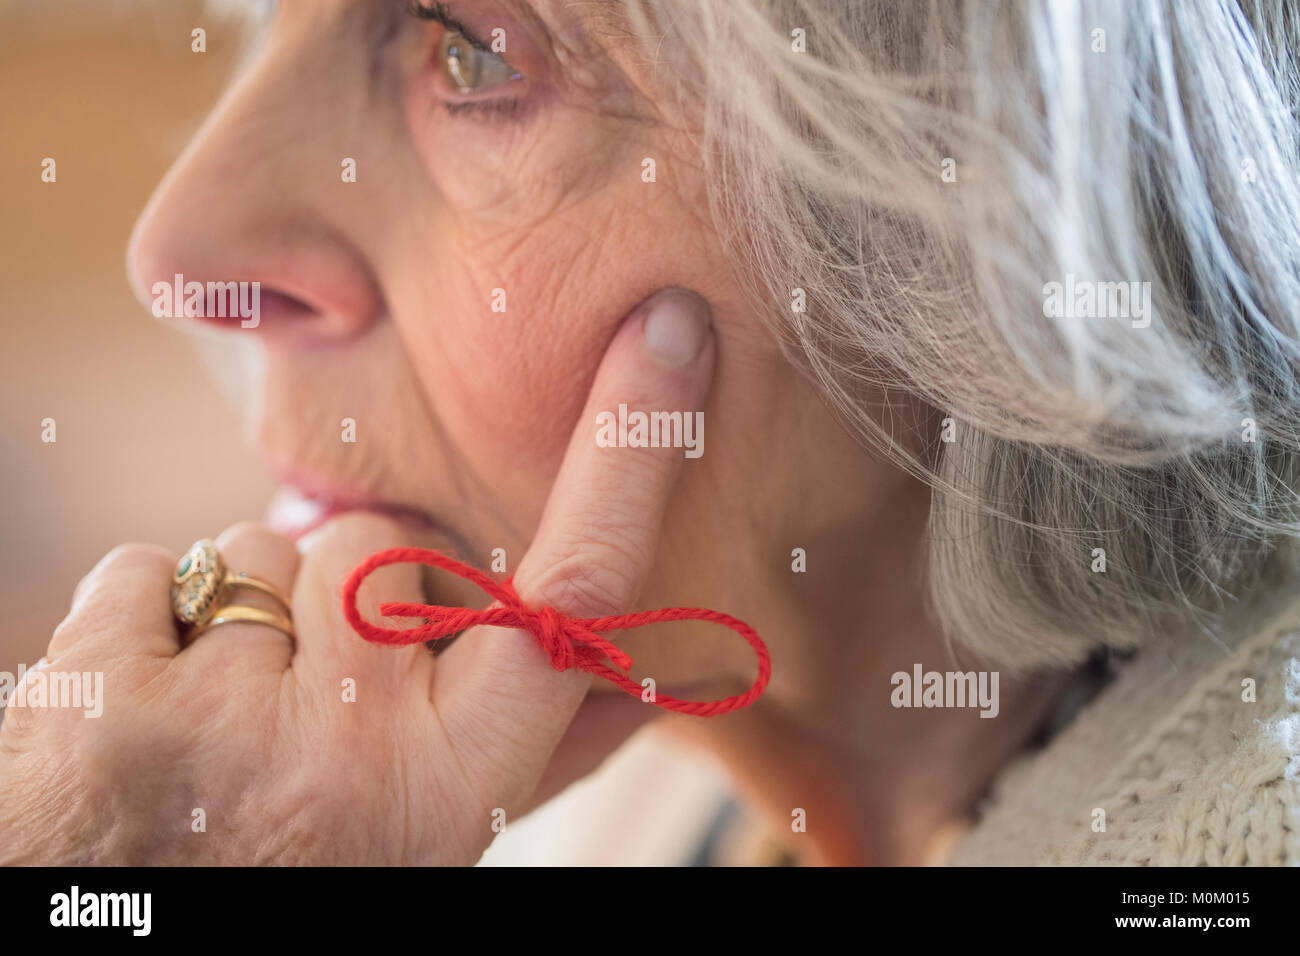 Close Up Of Senior Woman With String Tied Around Finger As Reminder - Stock Image